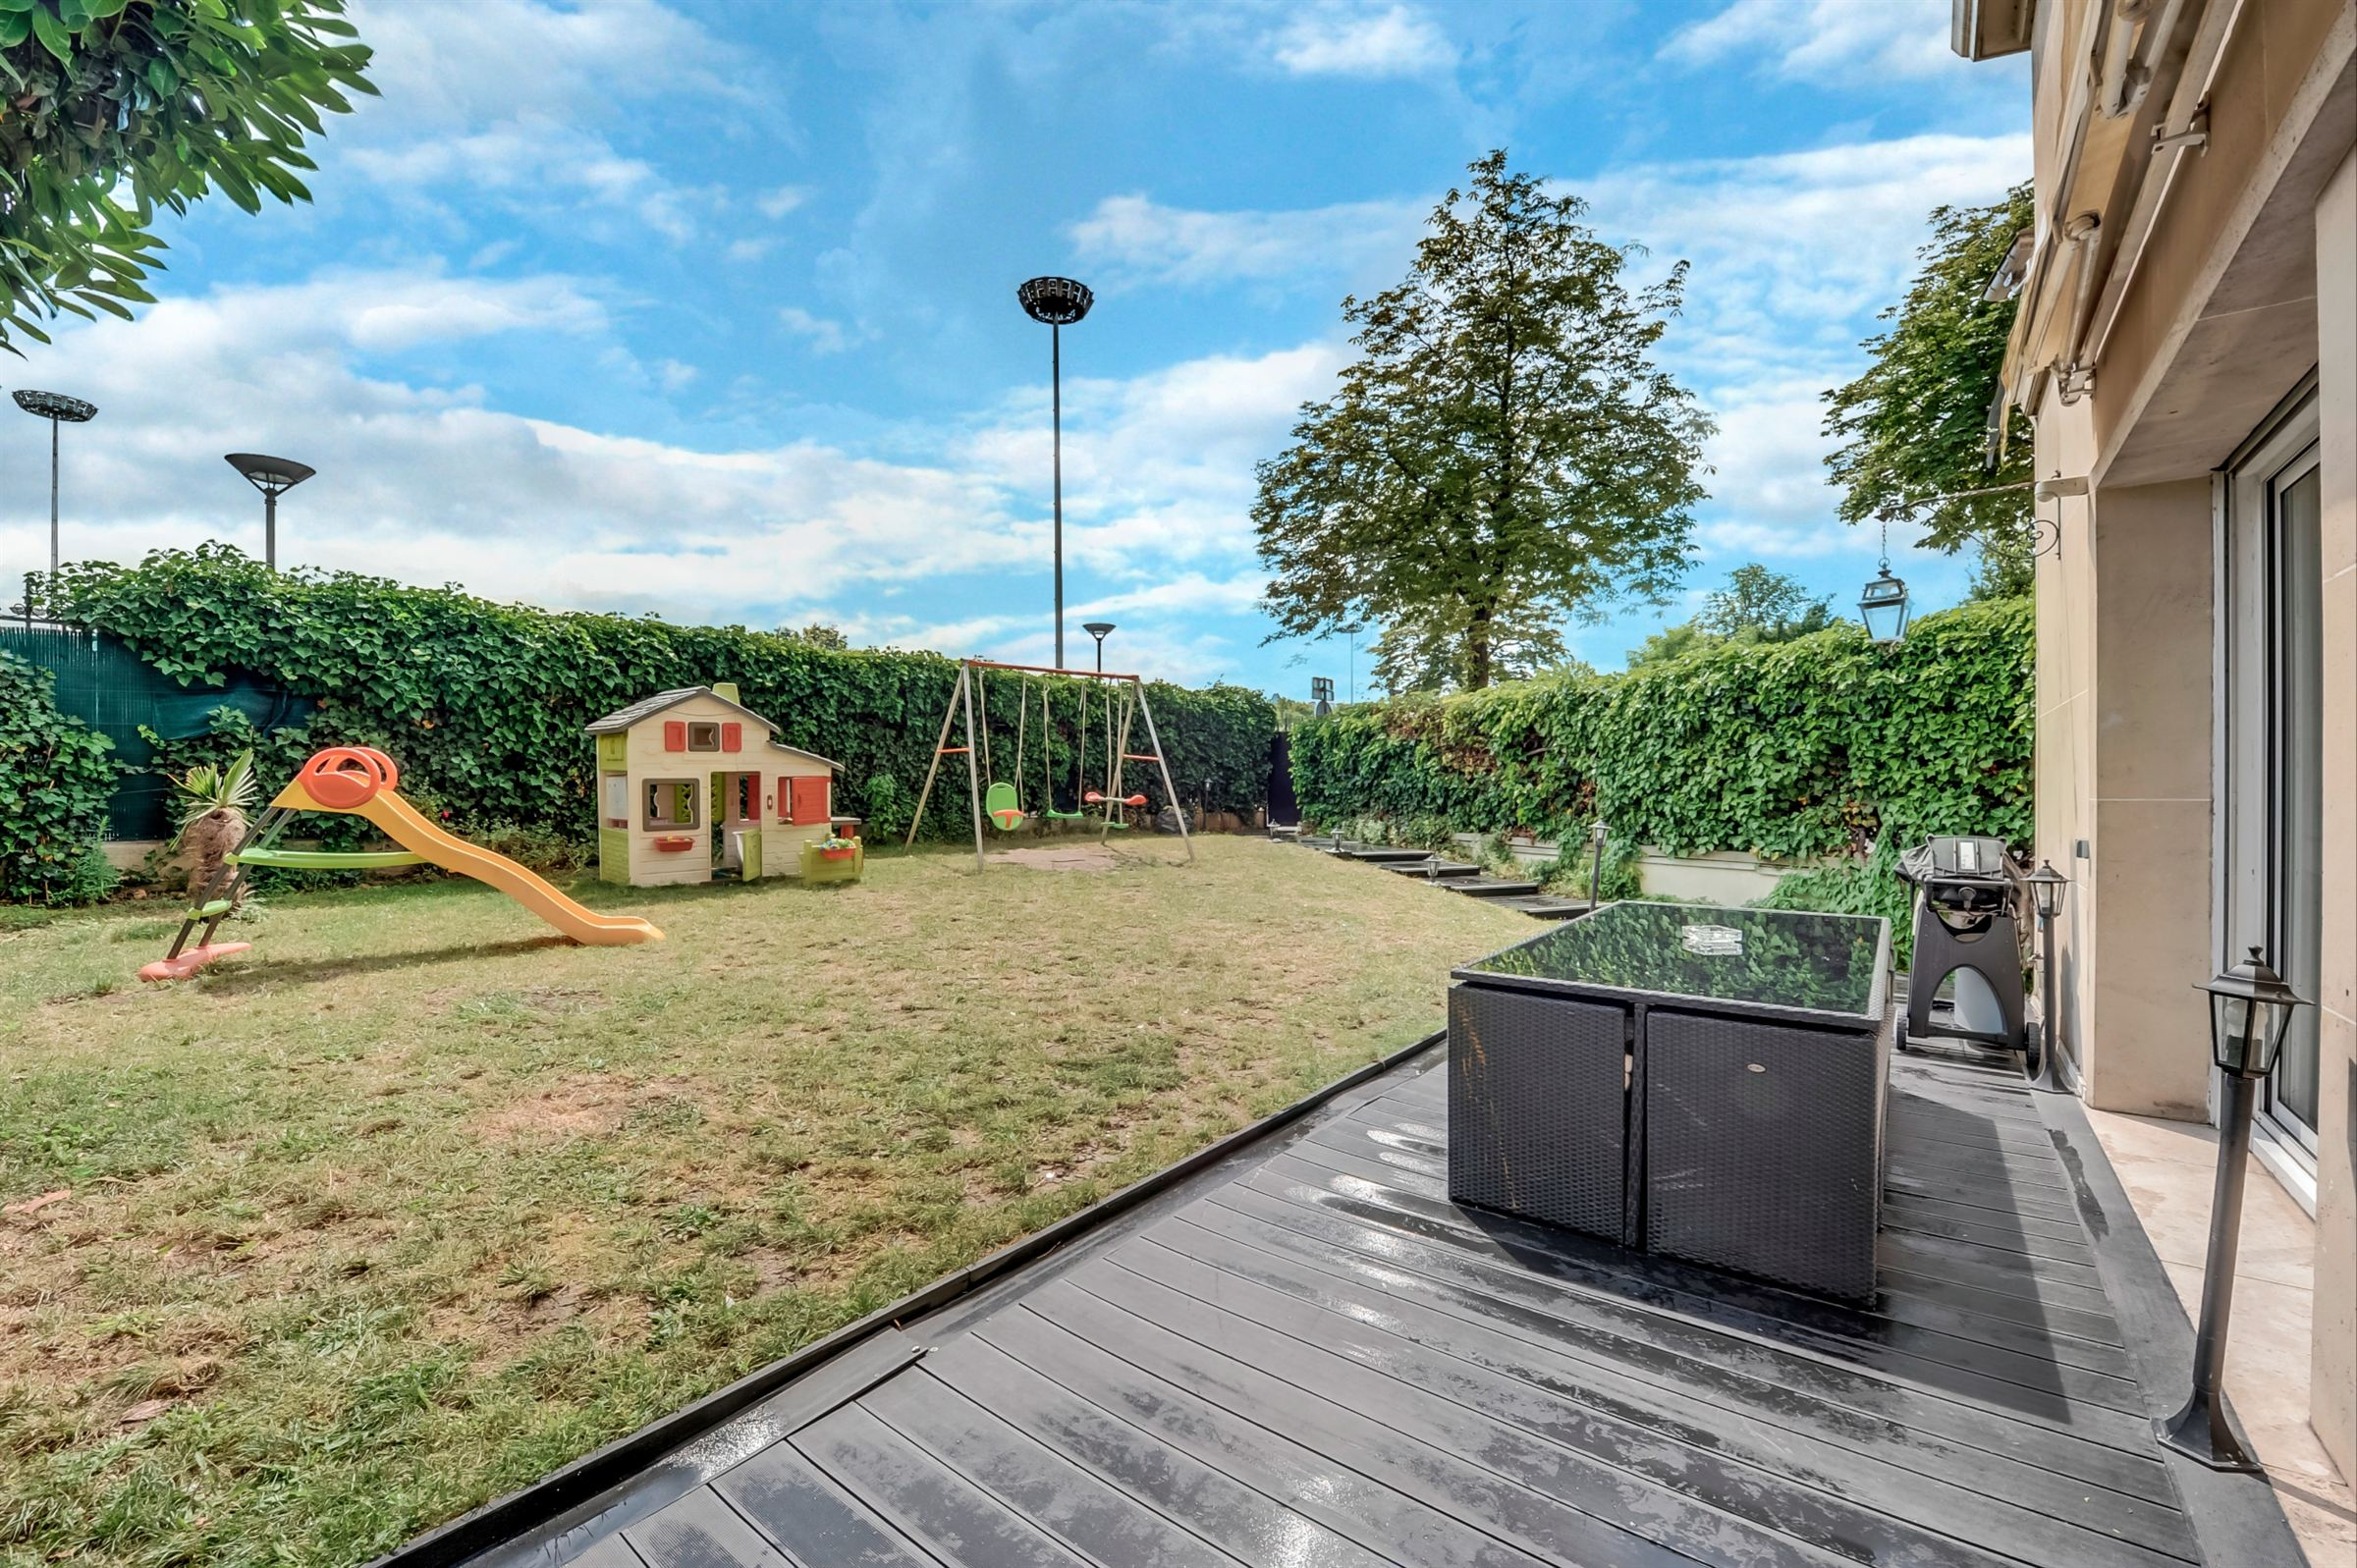 sales property at Apartment with a terraced garden for sale in Paris 16th - Vuitton Foundation